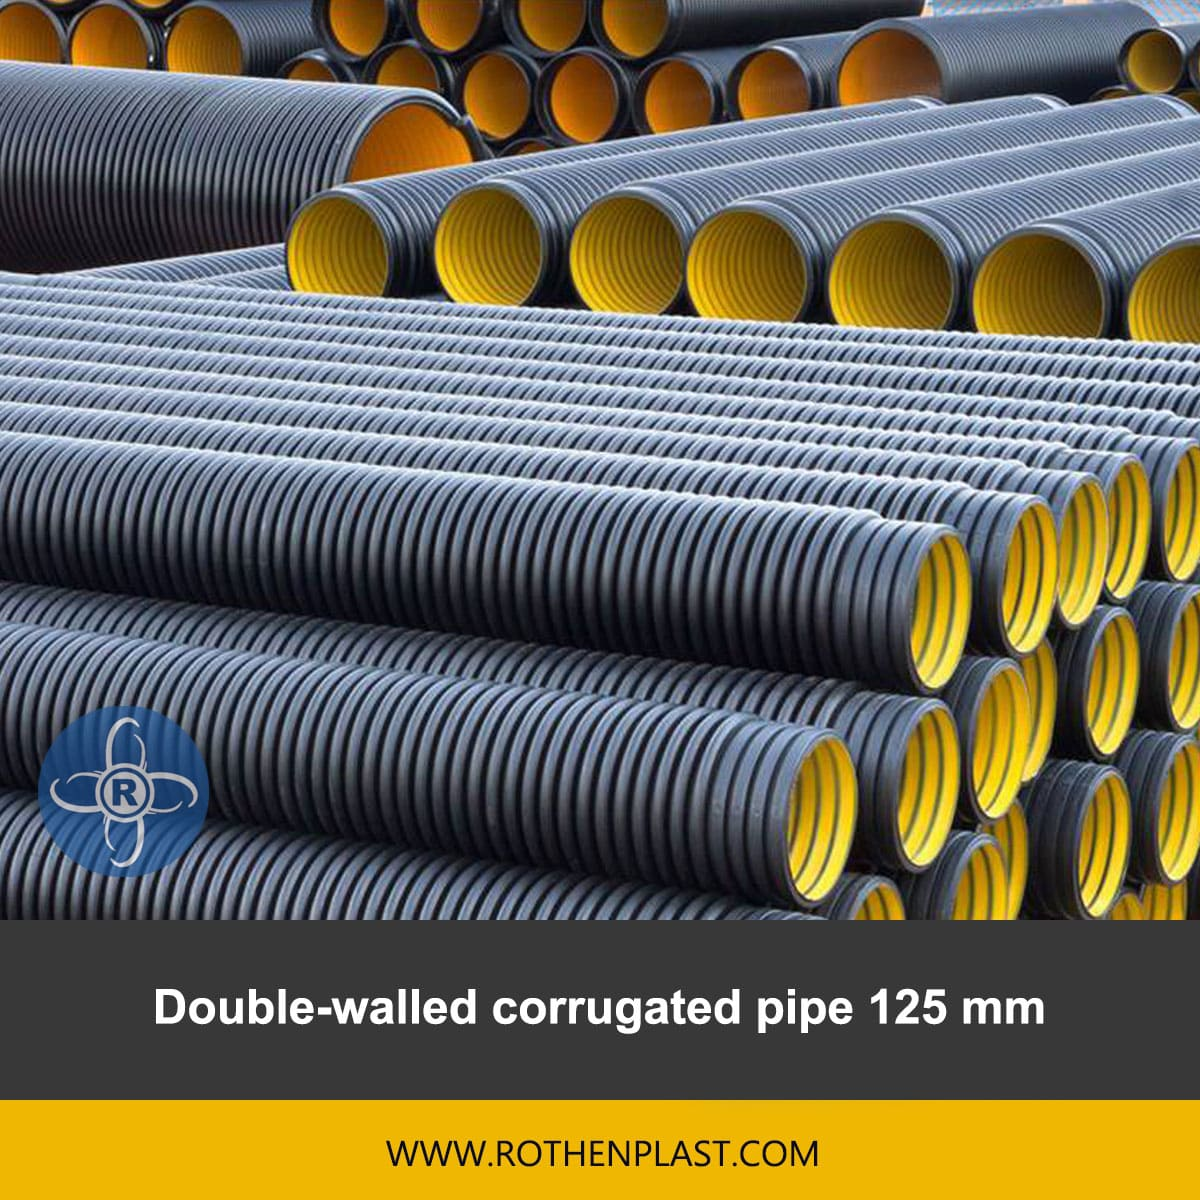 Double walled corrugated pipe 125 mm